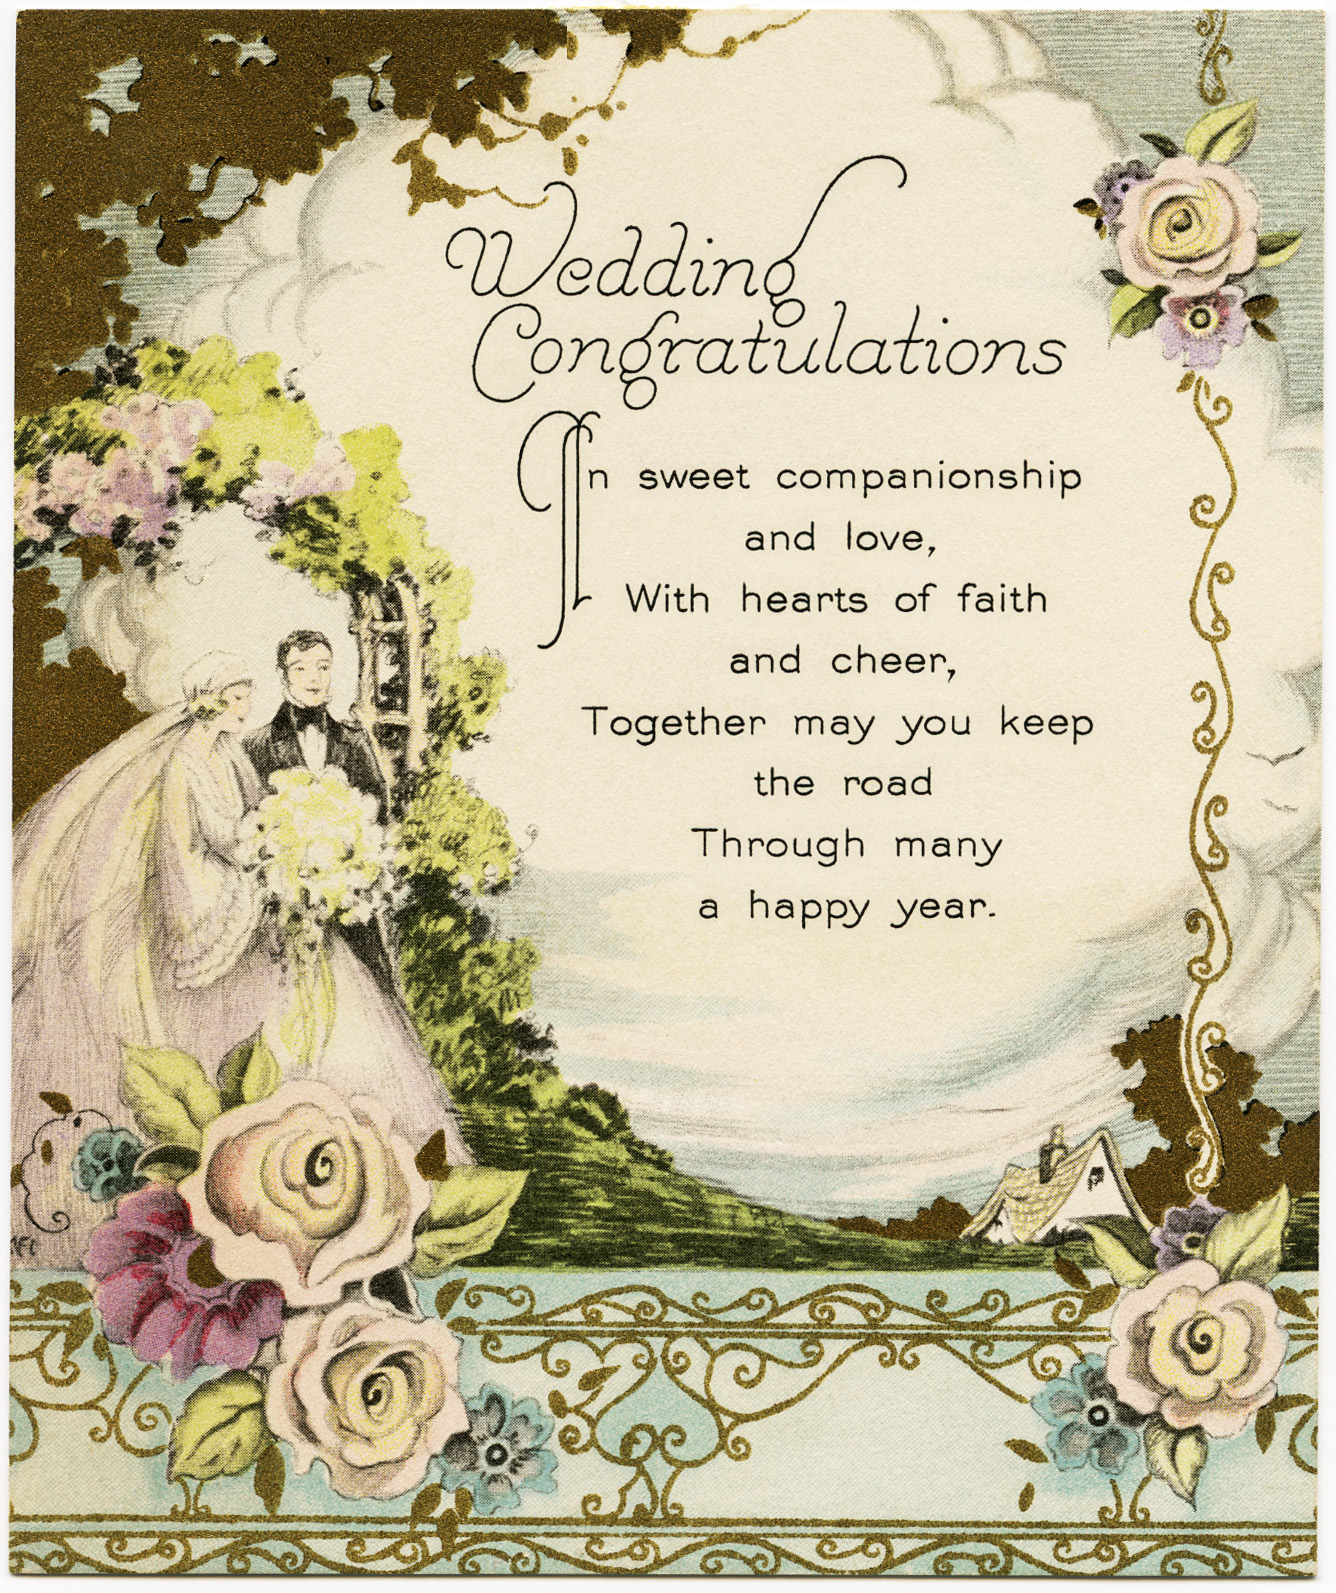 Vintage Wedding Congratulations   Old Design Shop Blog